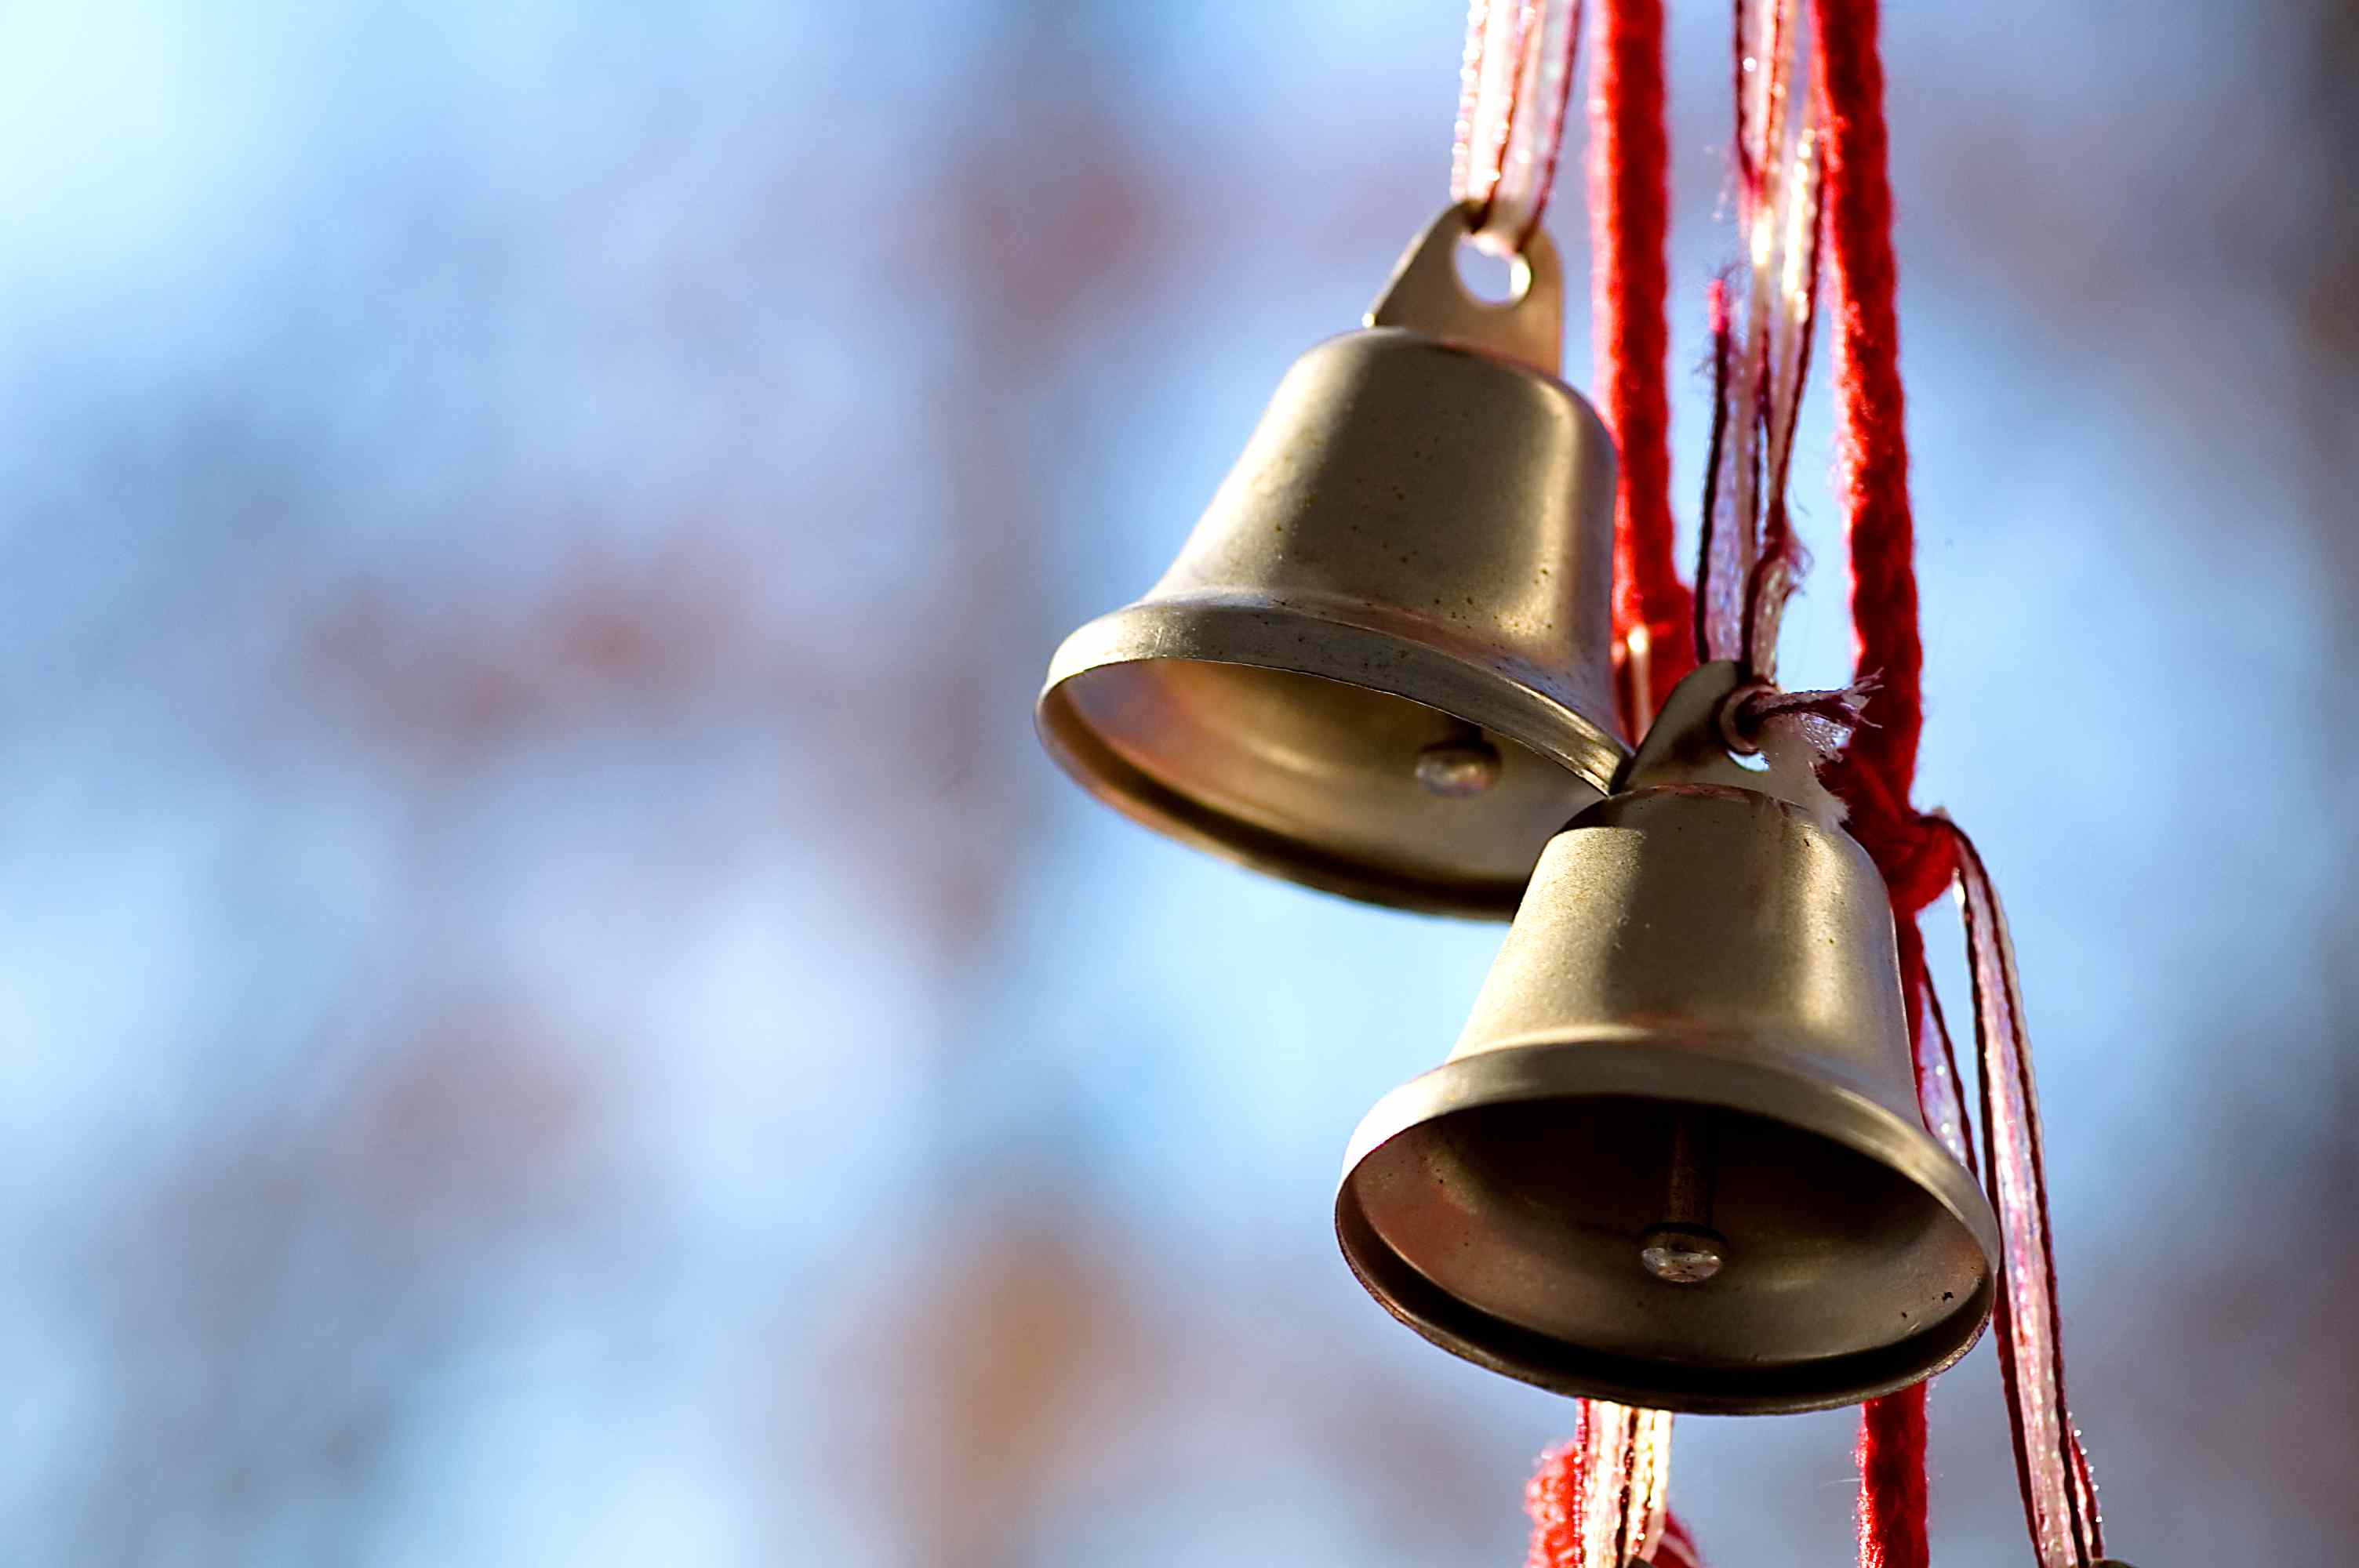 two metal bells hanging on a red ribbon and cord